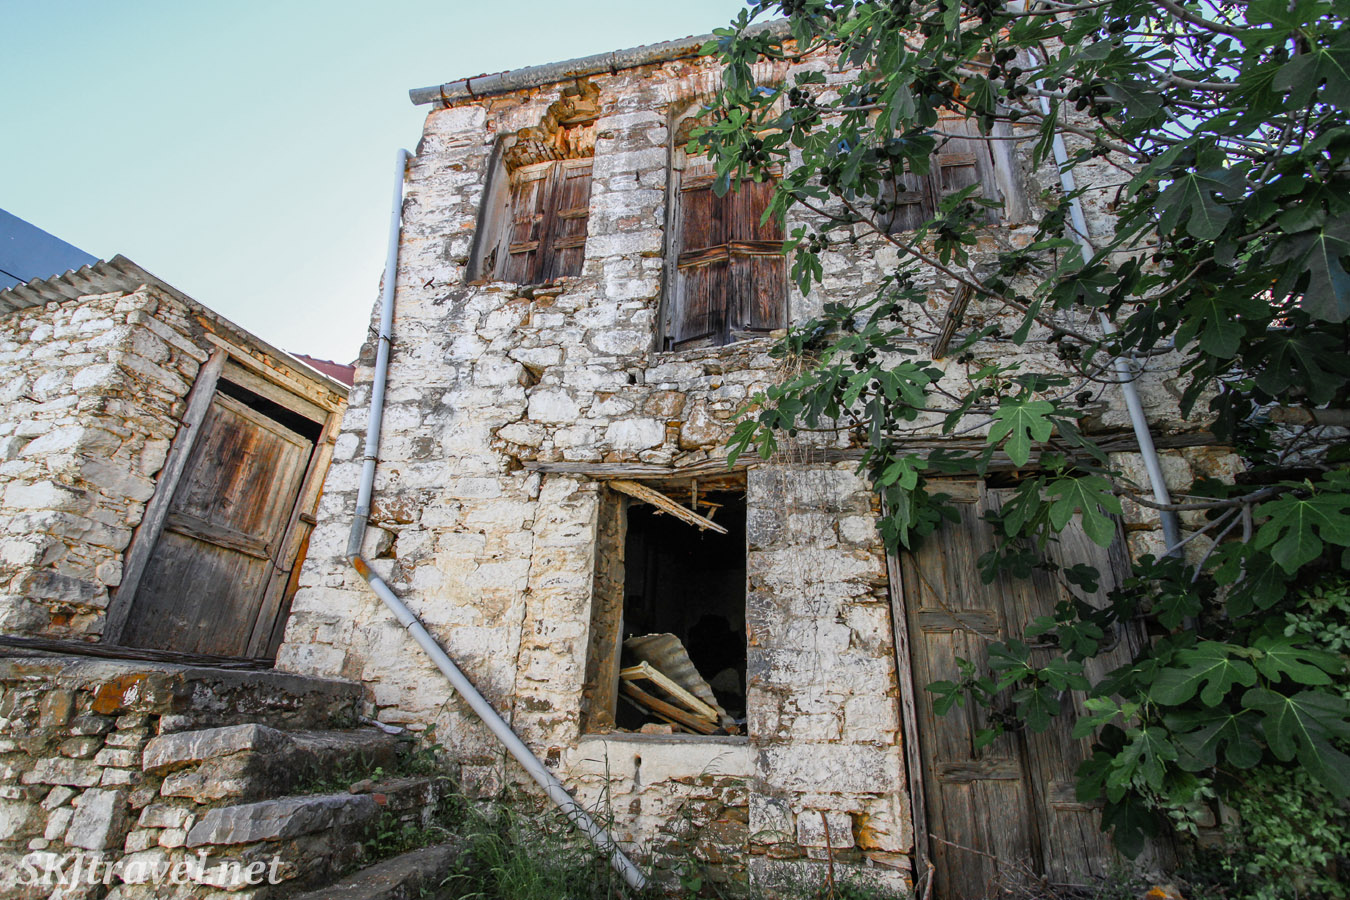 Abandoned stone home being taken over by vines. Volissos, Chios Island, Greece.